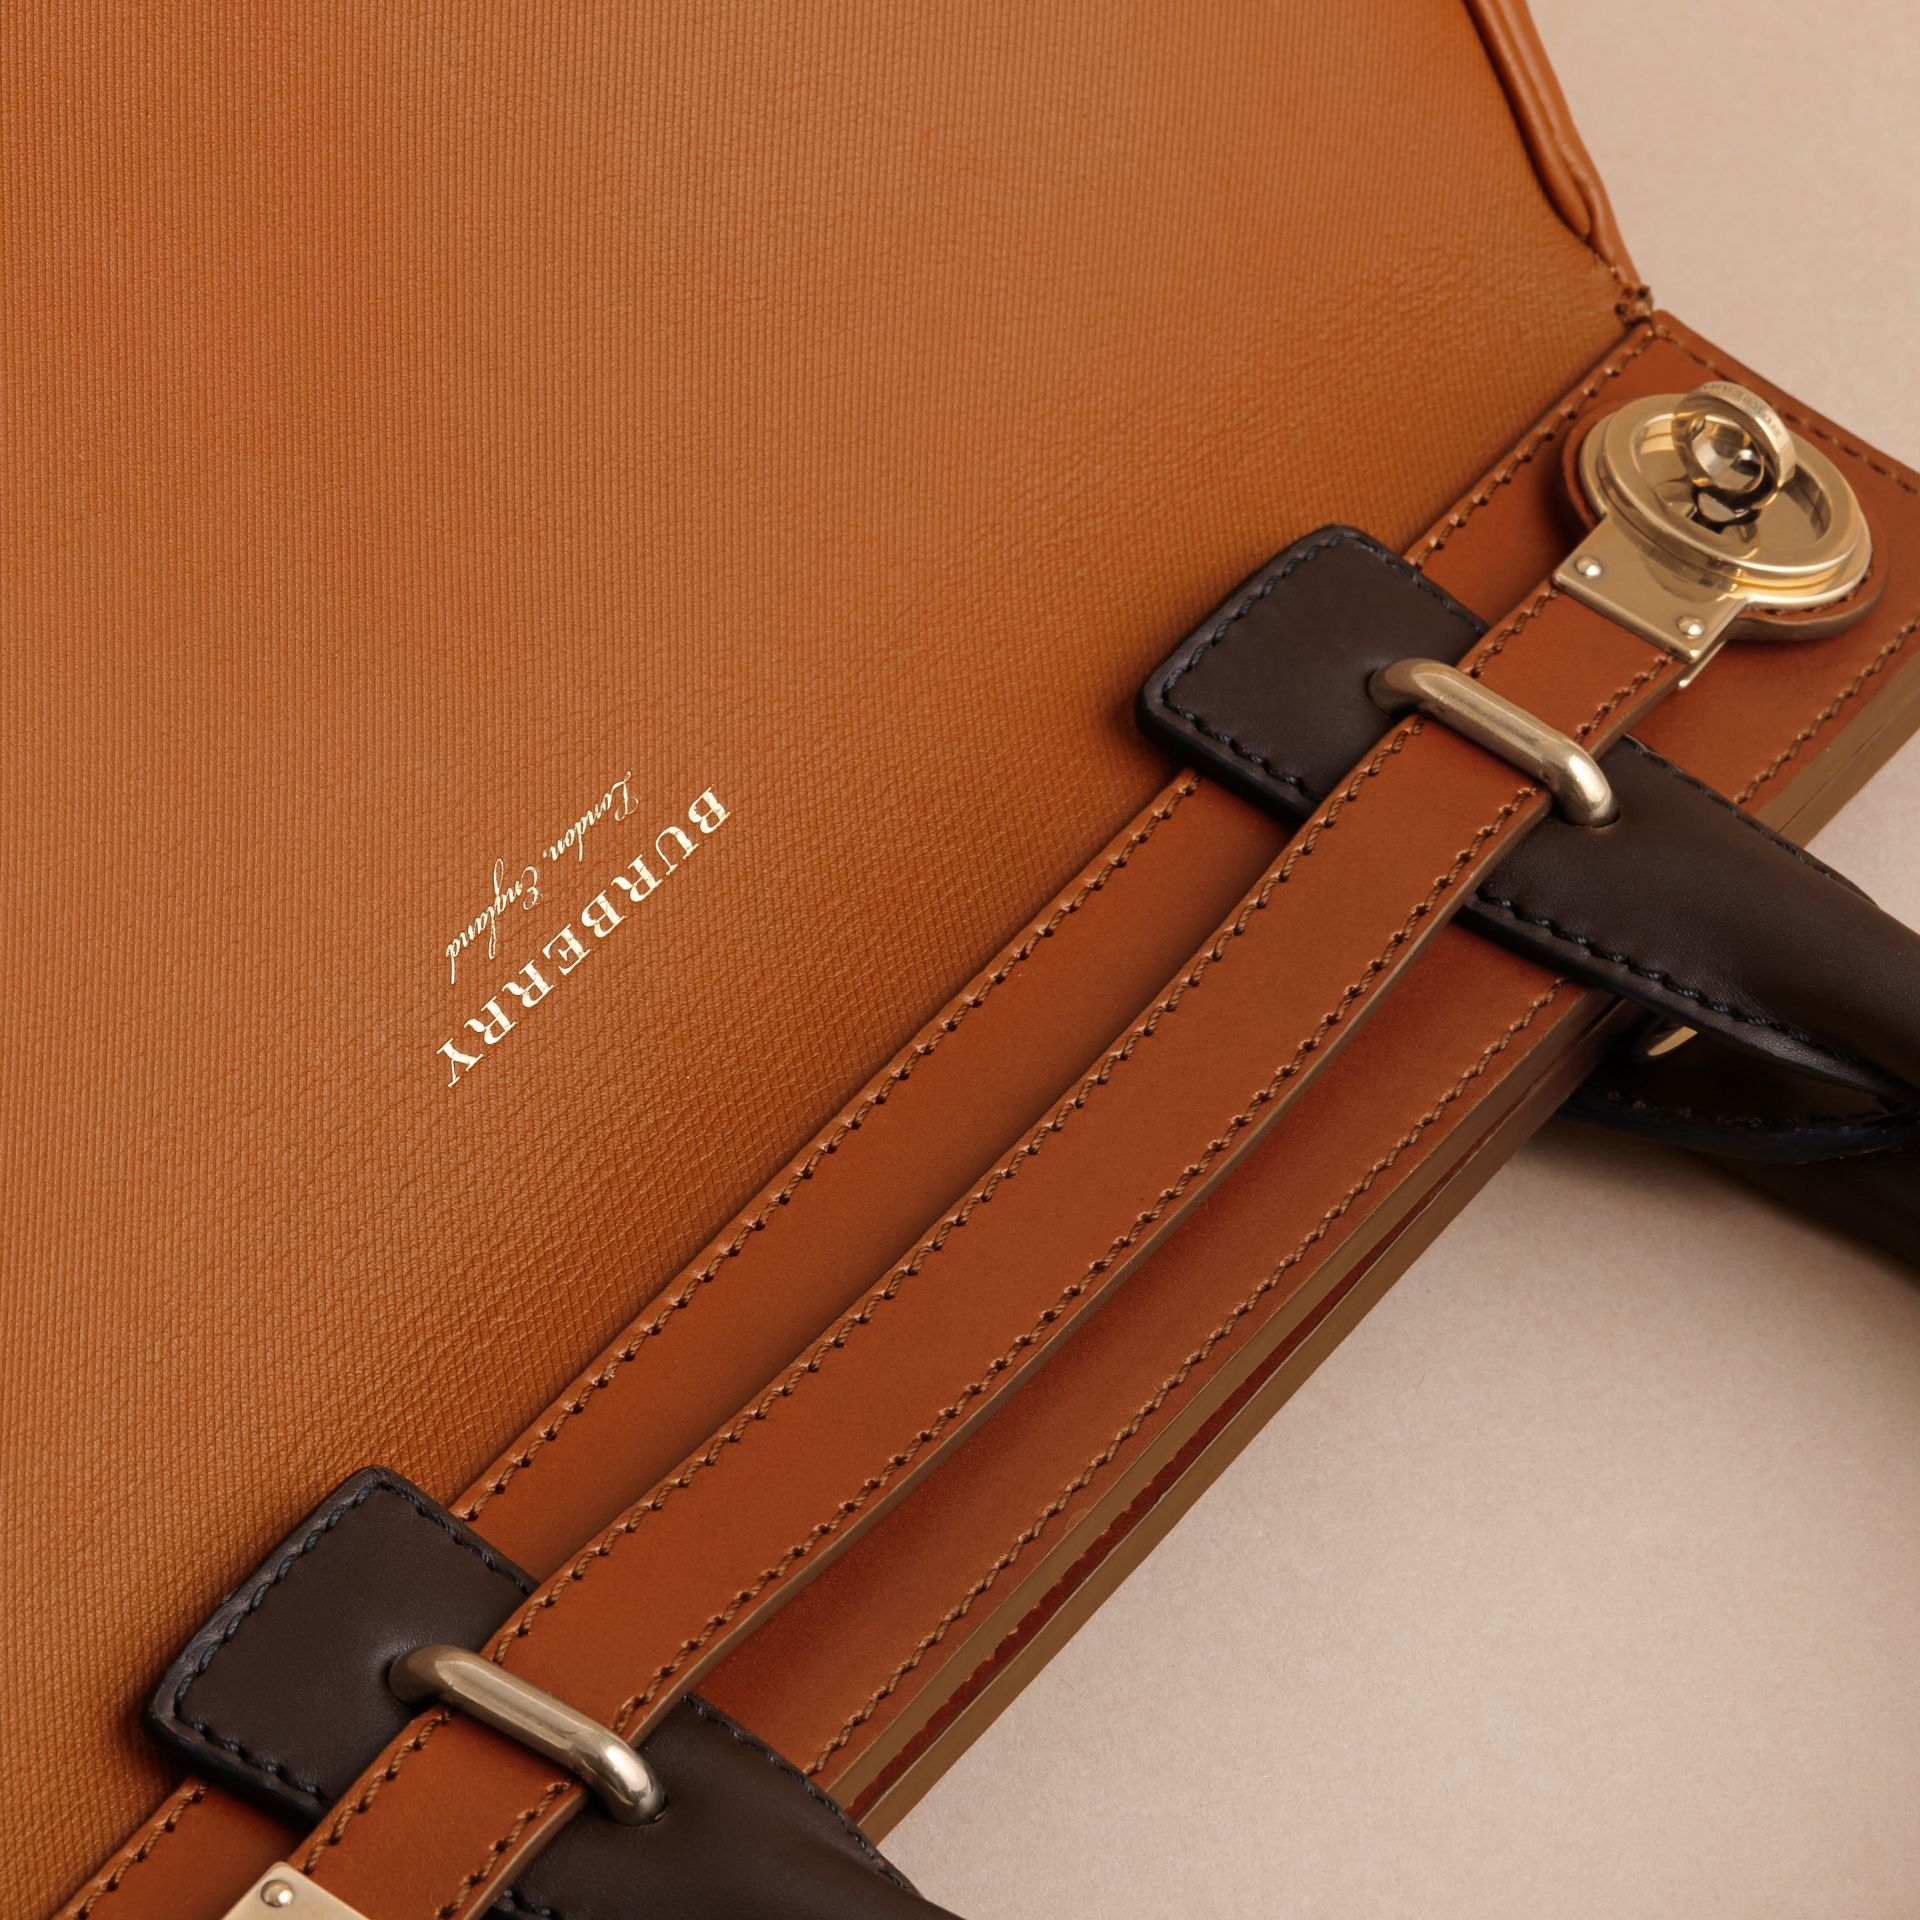 The DK88 Luggage Bag Tan - gallery image 5